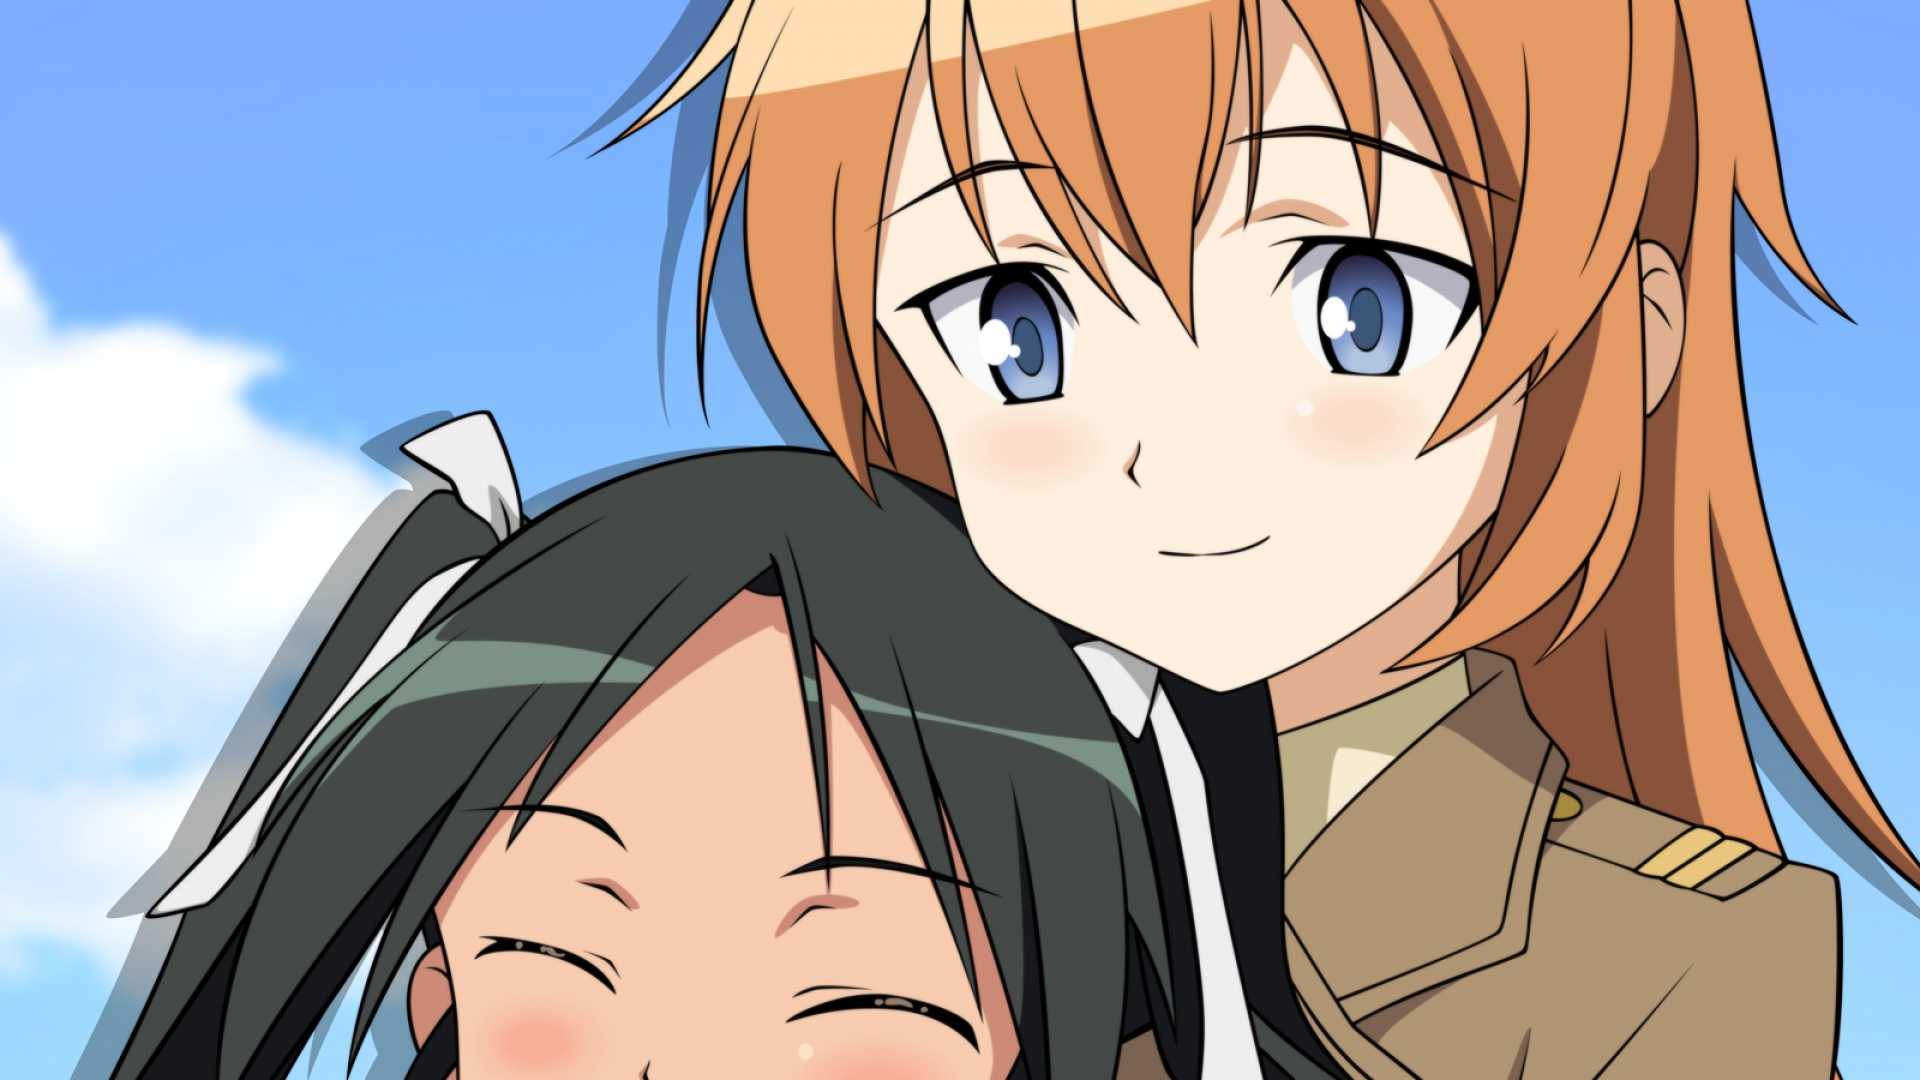 strike witches, francesca lucchini, charlotte e yeager